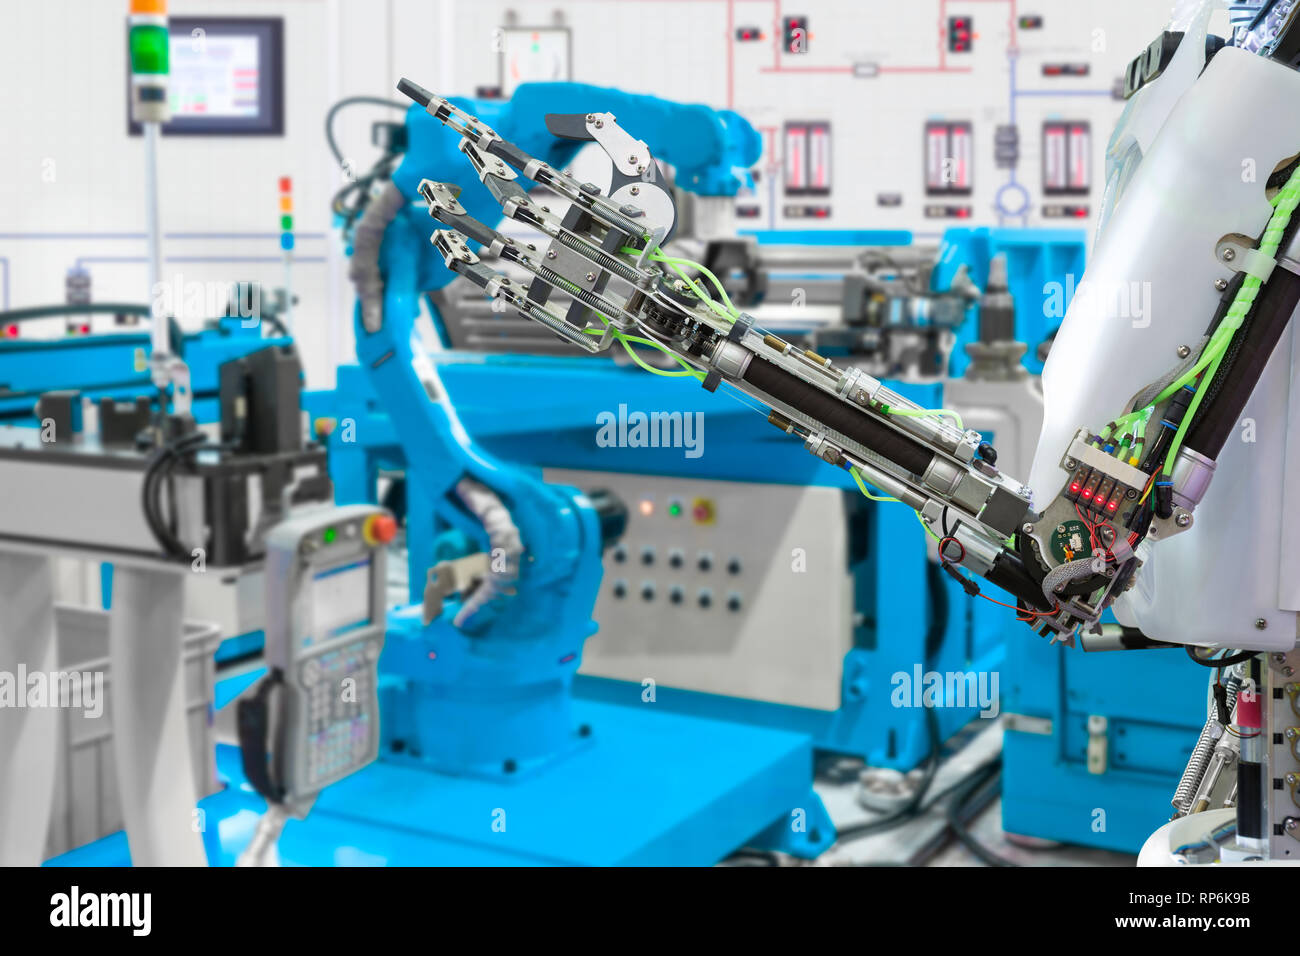 Robotic hand control robot industry, Future technology concept - Stock Image